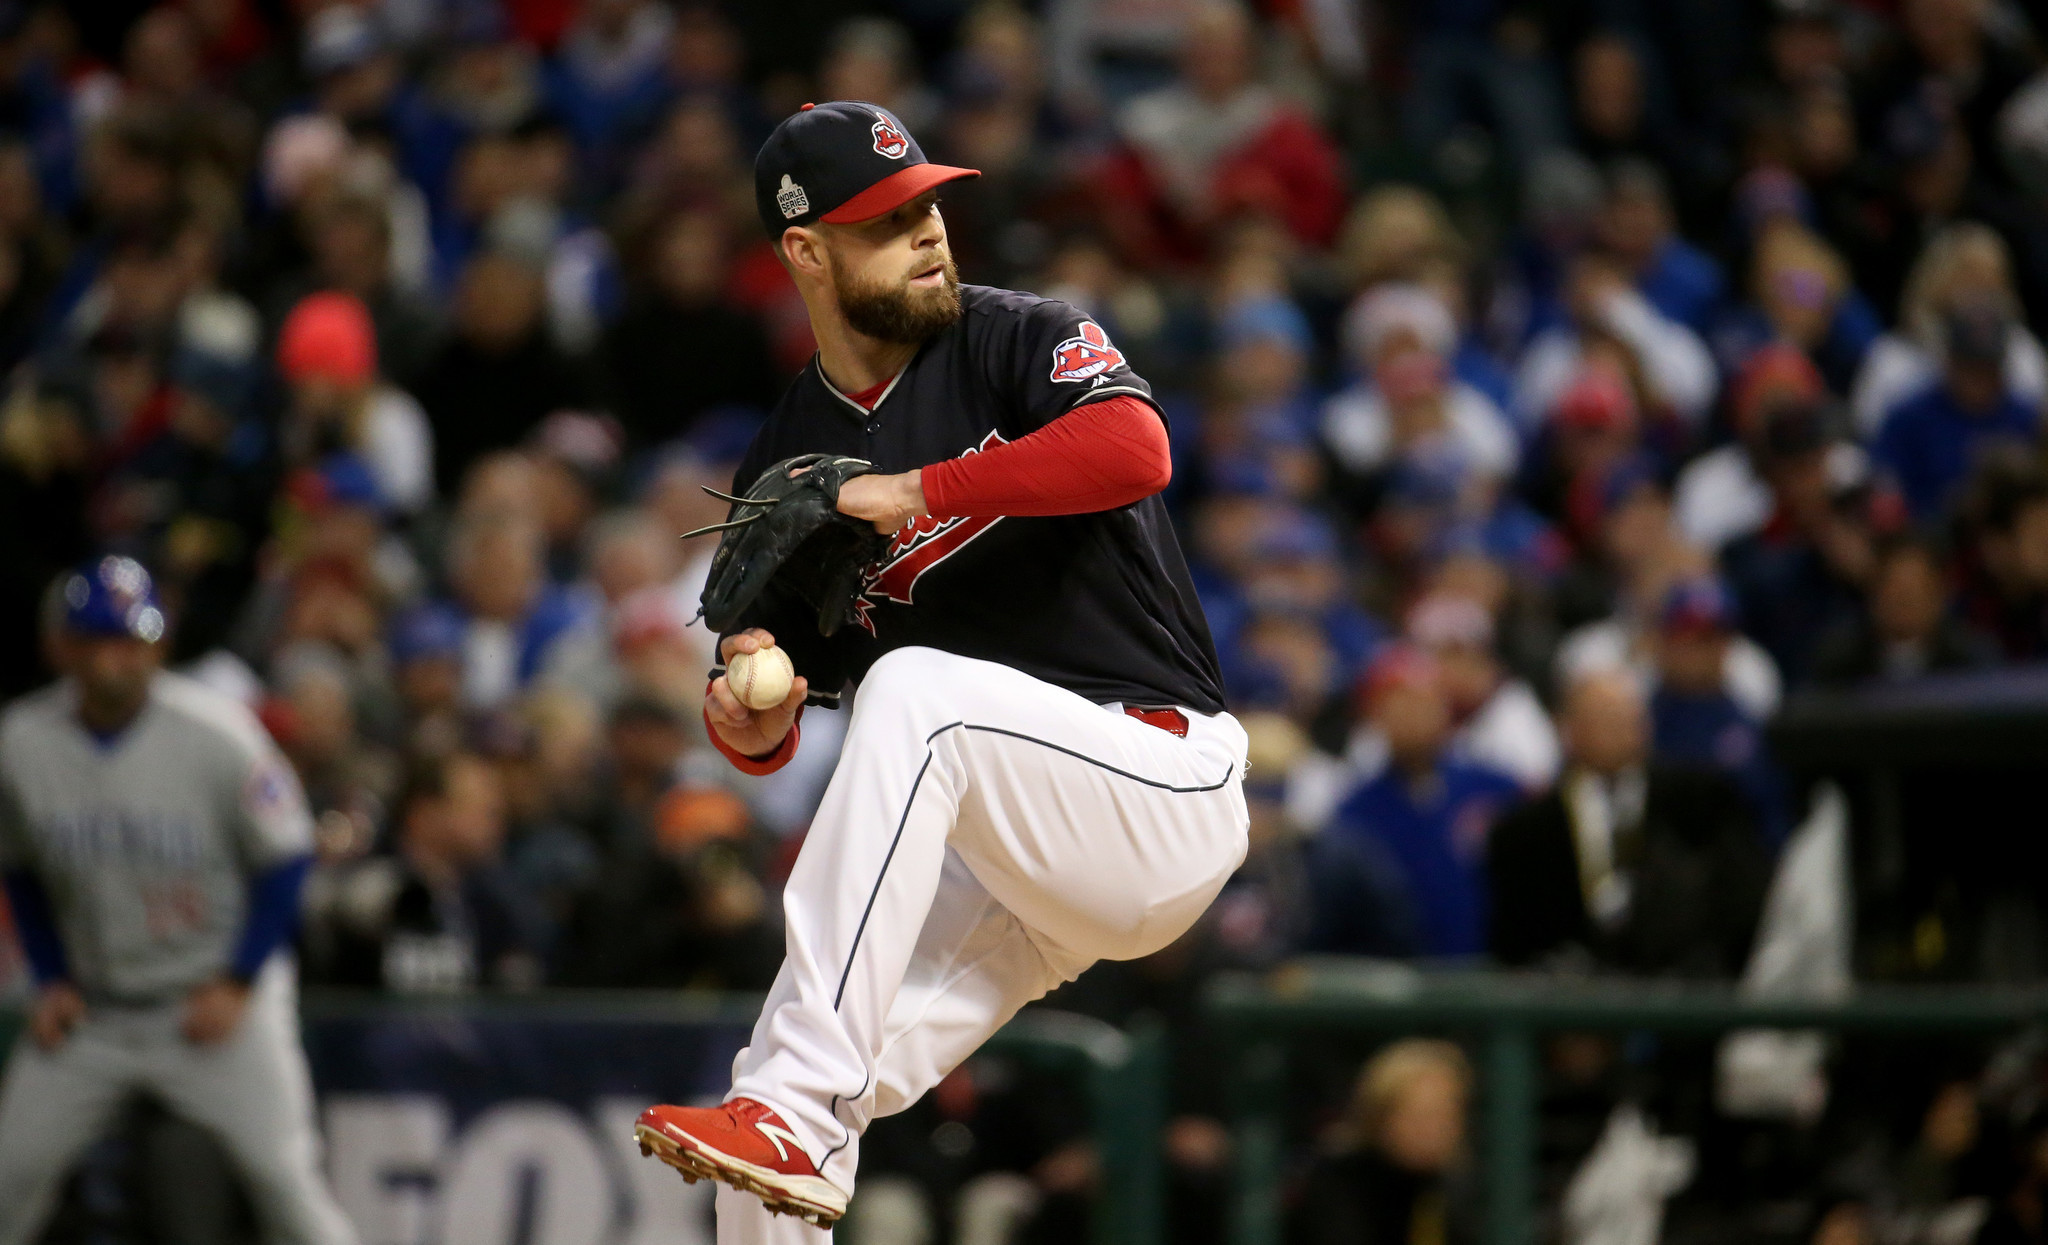 Ct-corey-kluber-dominant-world-series-haugh-spt-1026-20161025